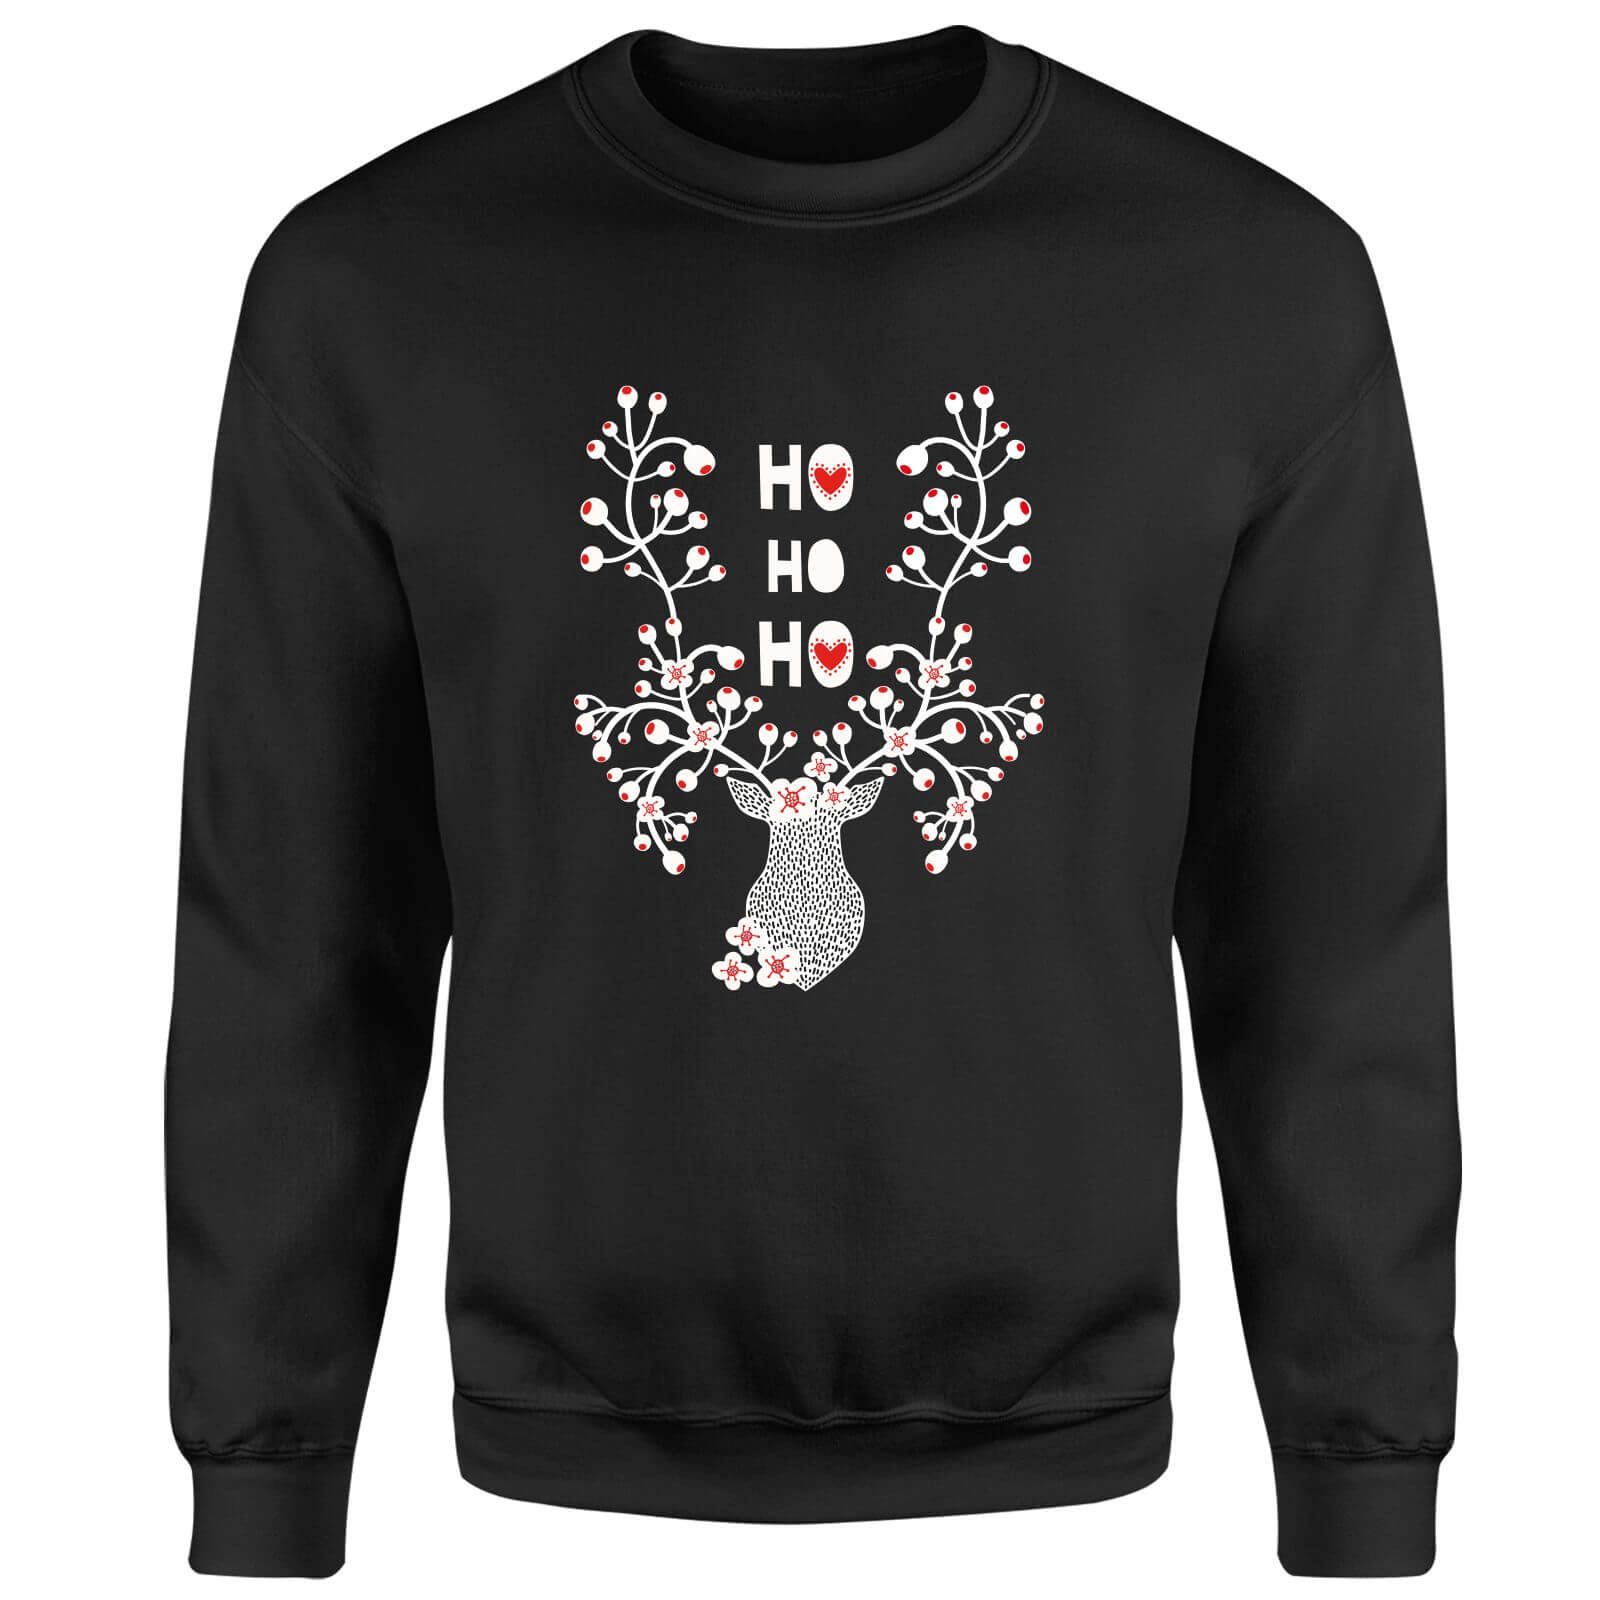 Ho Ho Ho Sweatshirt - Black